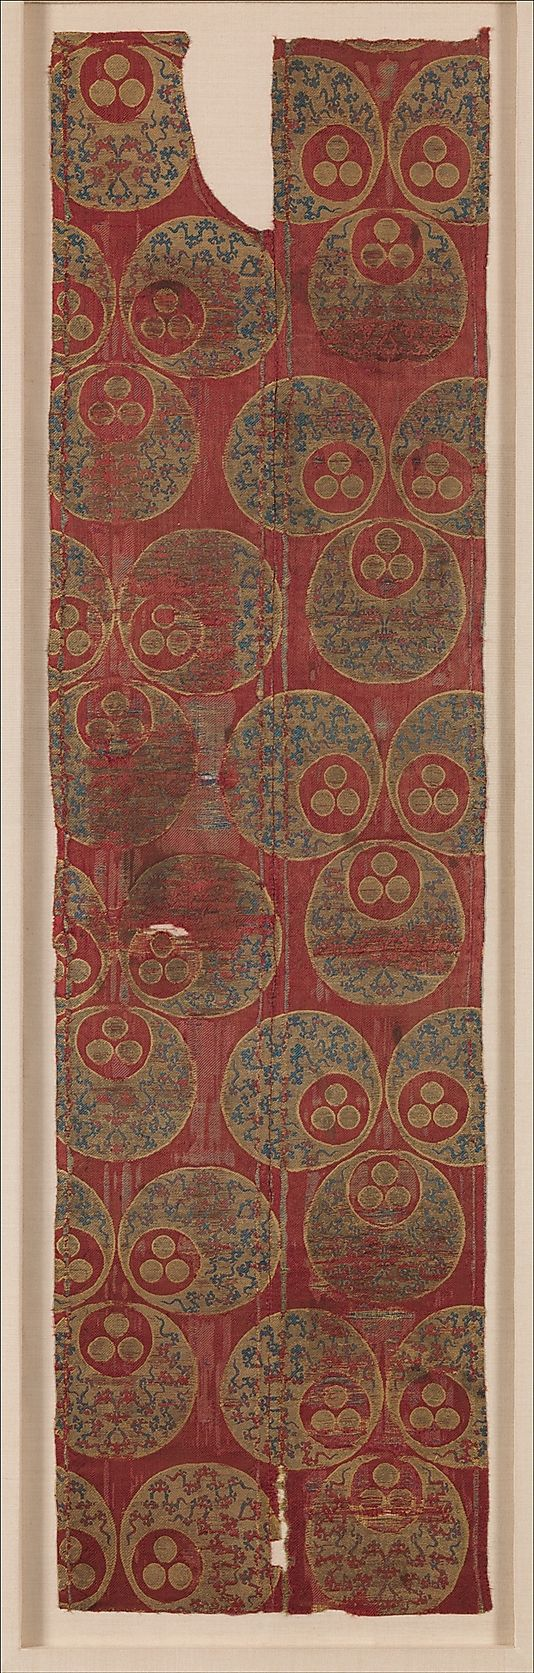 Textile with Large Chintamani Design Object Name: Fragment Date: 16th century Geography: Turkey Medium: Silk, metal wrapped thread; lampas (kemha)